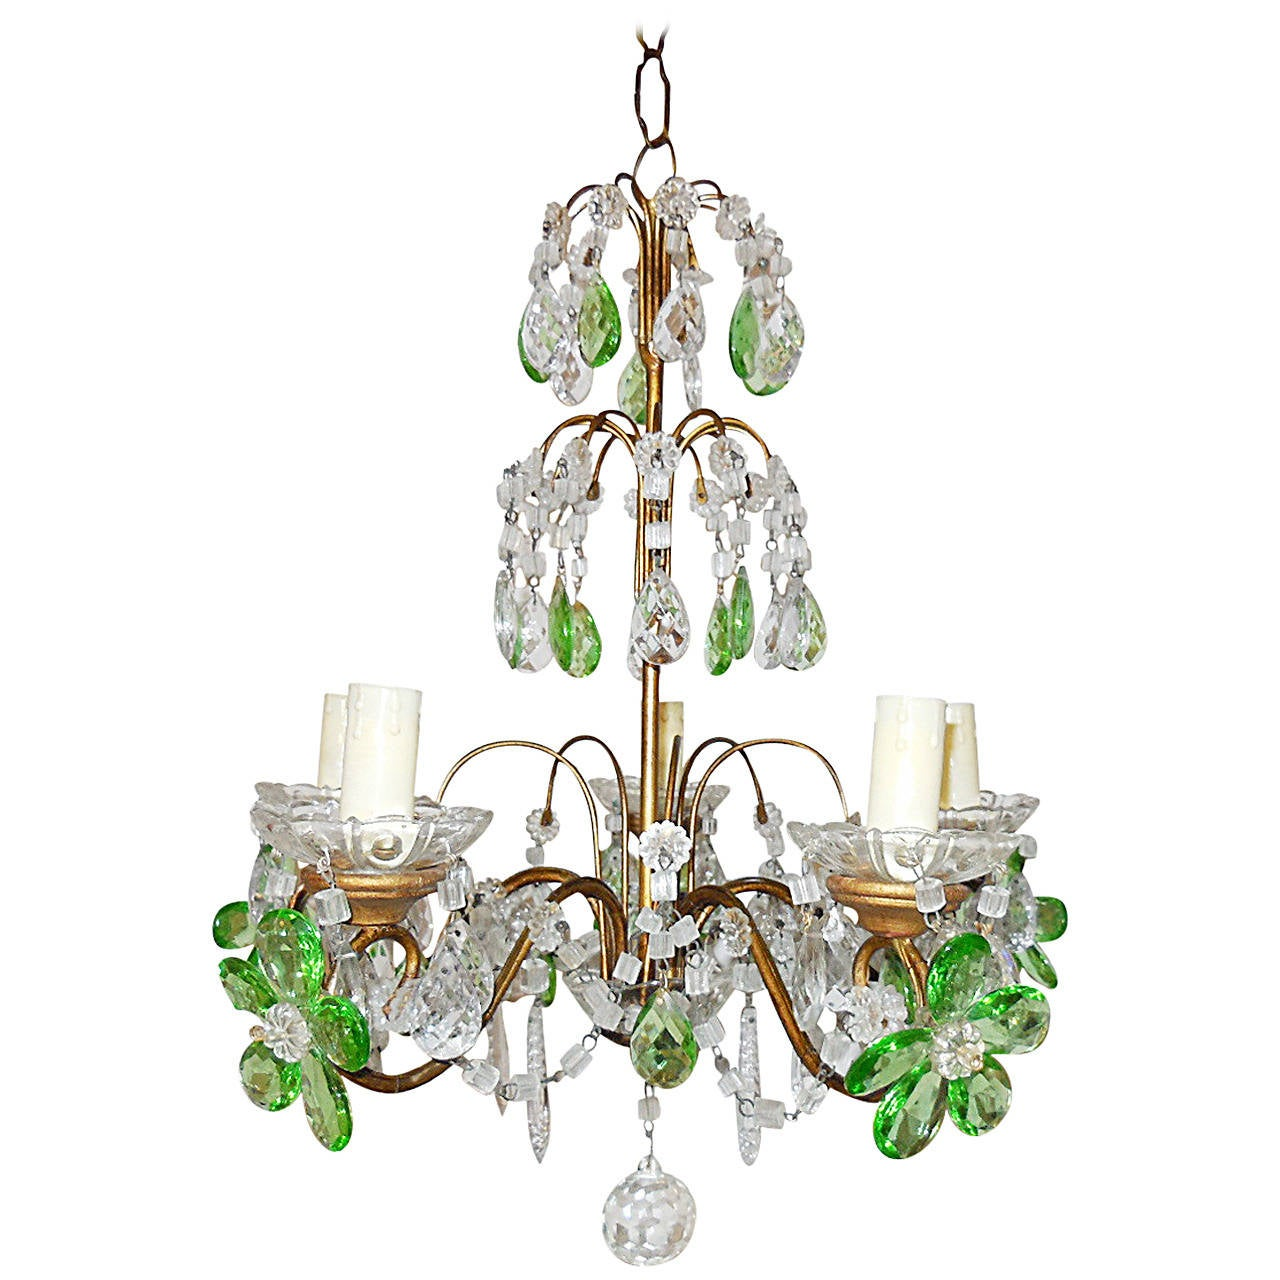 French green and clear crystal prisms flowers chandelier circa french green and clear crystal prisms flowers chandelier circa 1920 1 arubaitofo Image collections